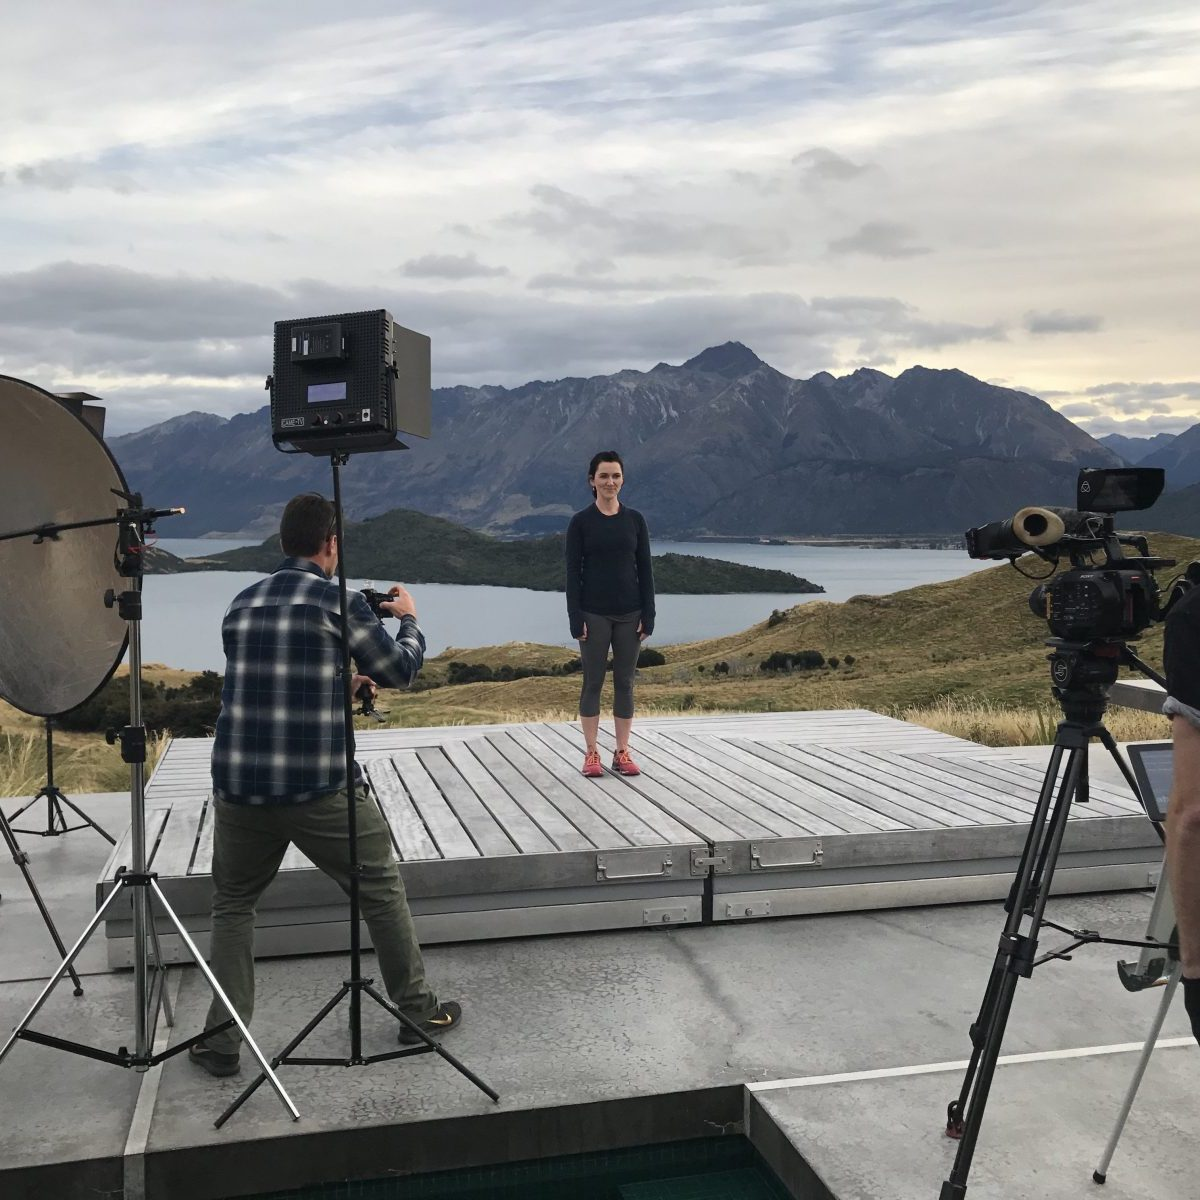 Emma_Ferris_outside_at_Aroha_filming_with_Josh_Wallace_and_Jonny_James_from_Storyworks_75845df3-a262-40ec-b855-8728ea5fd971